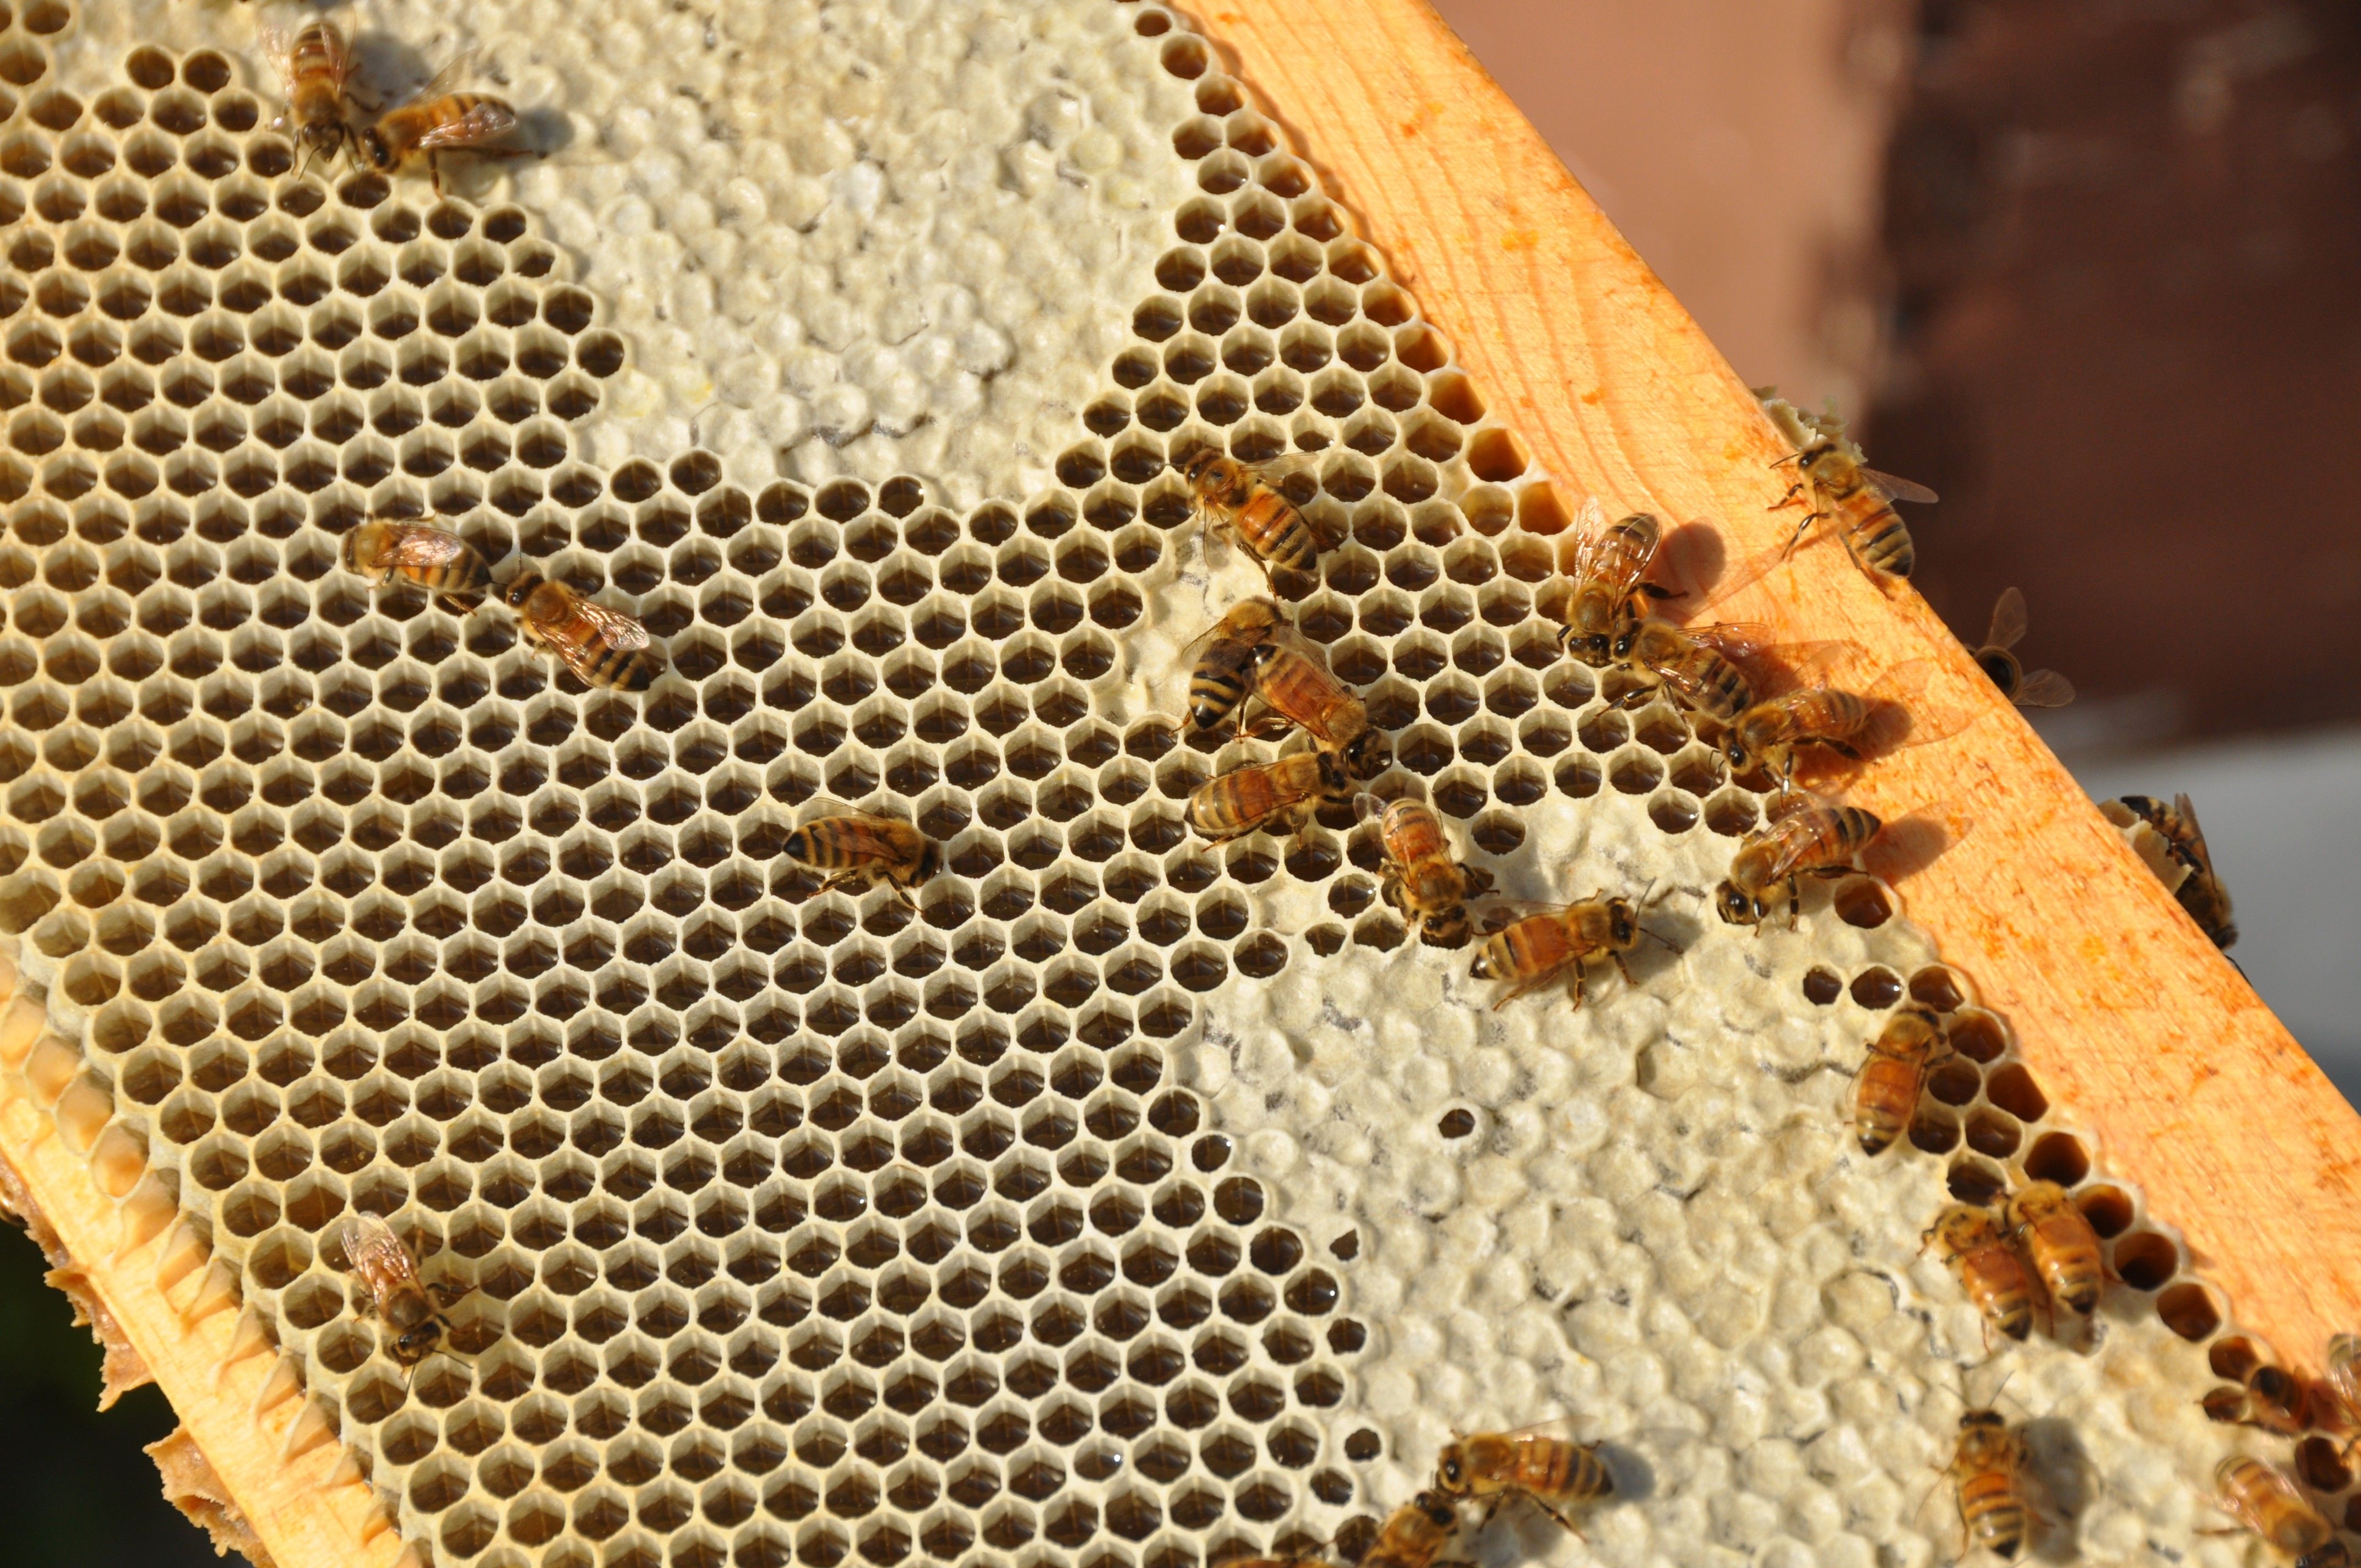 Busy Bees Capping Honey For Long Term Storage.